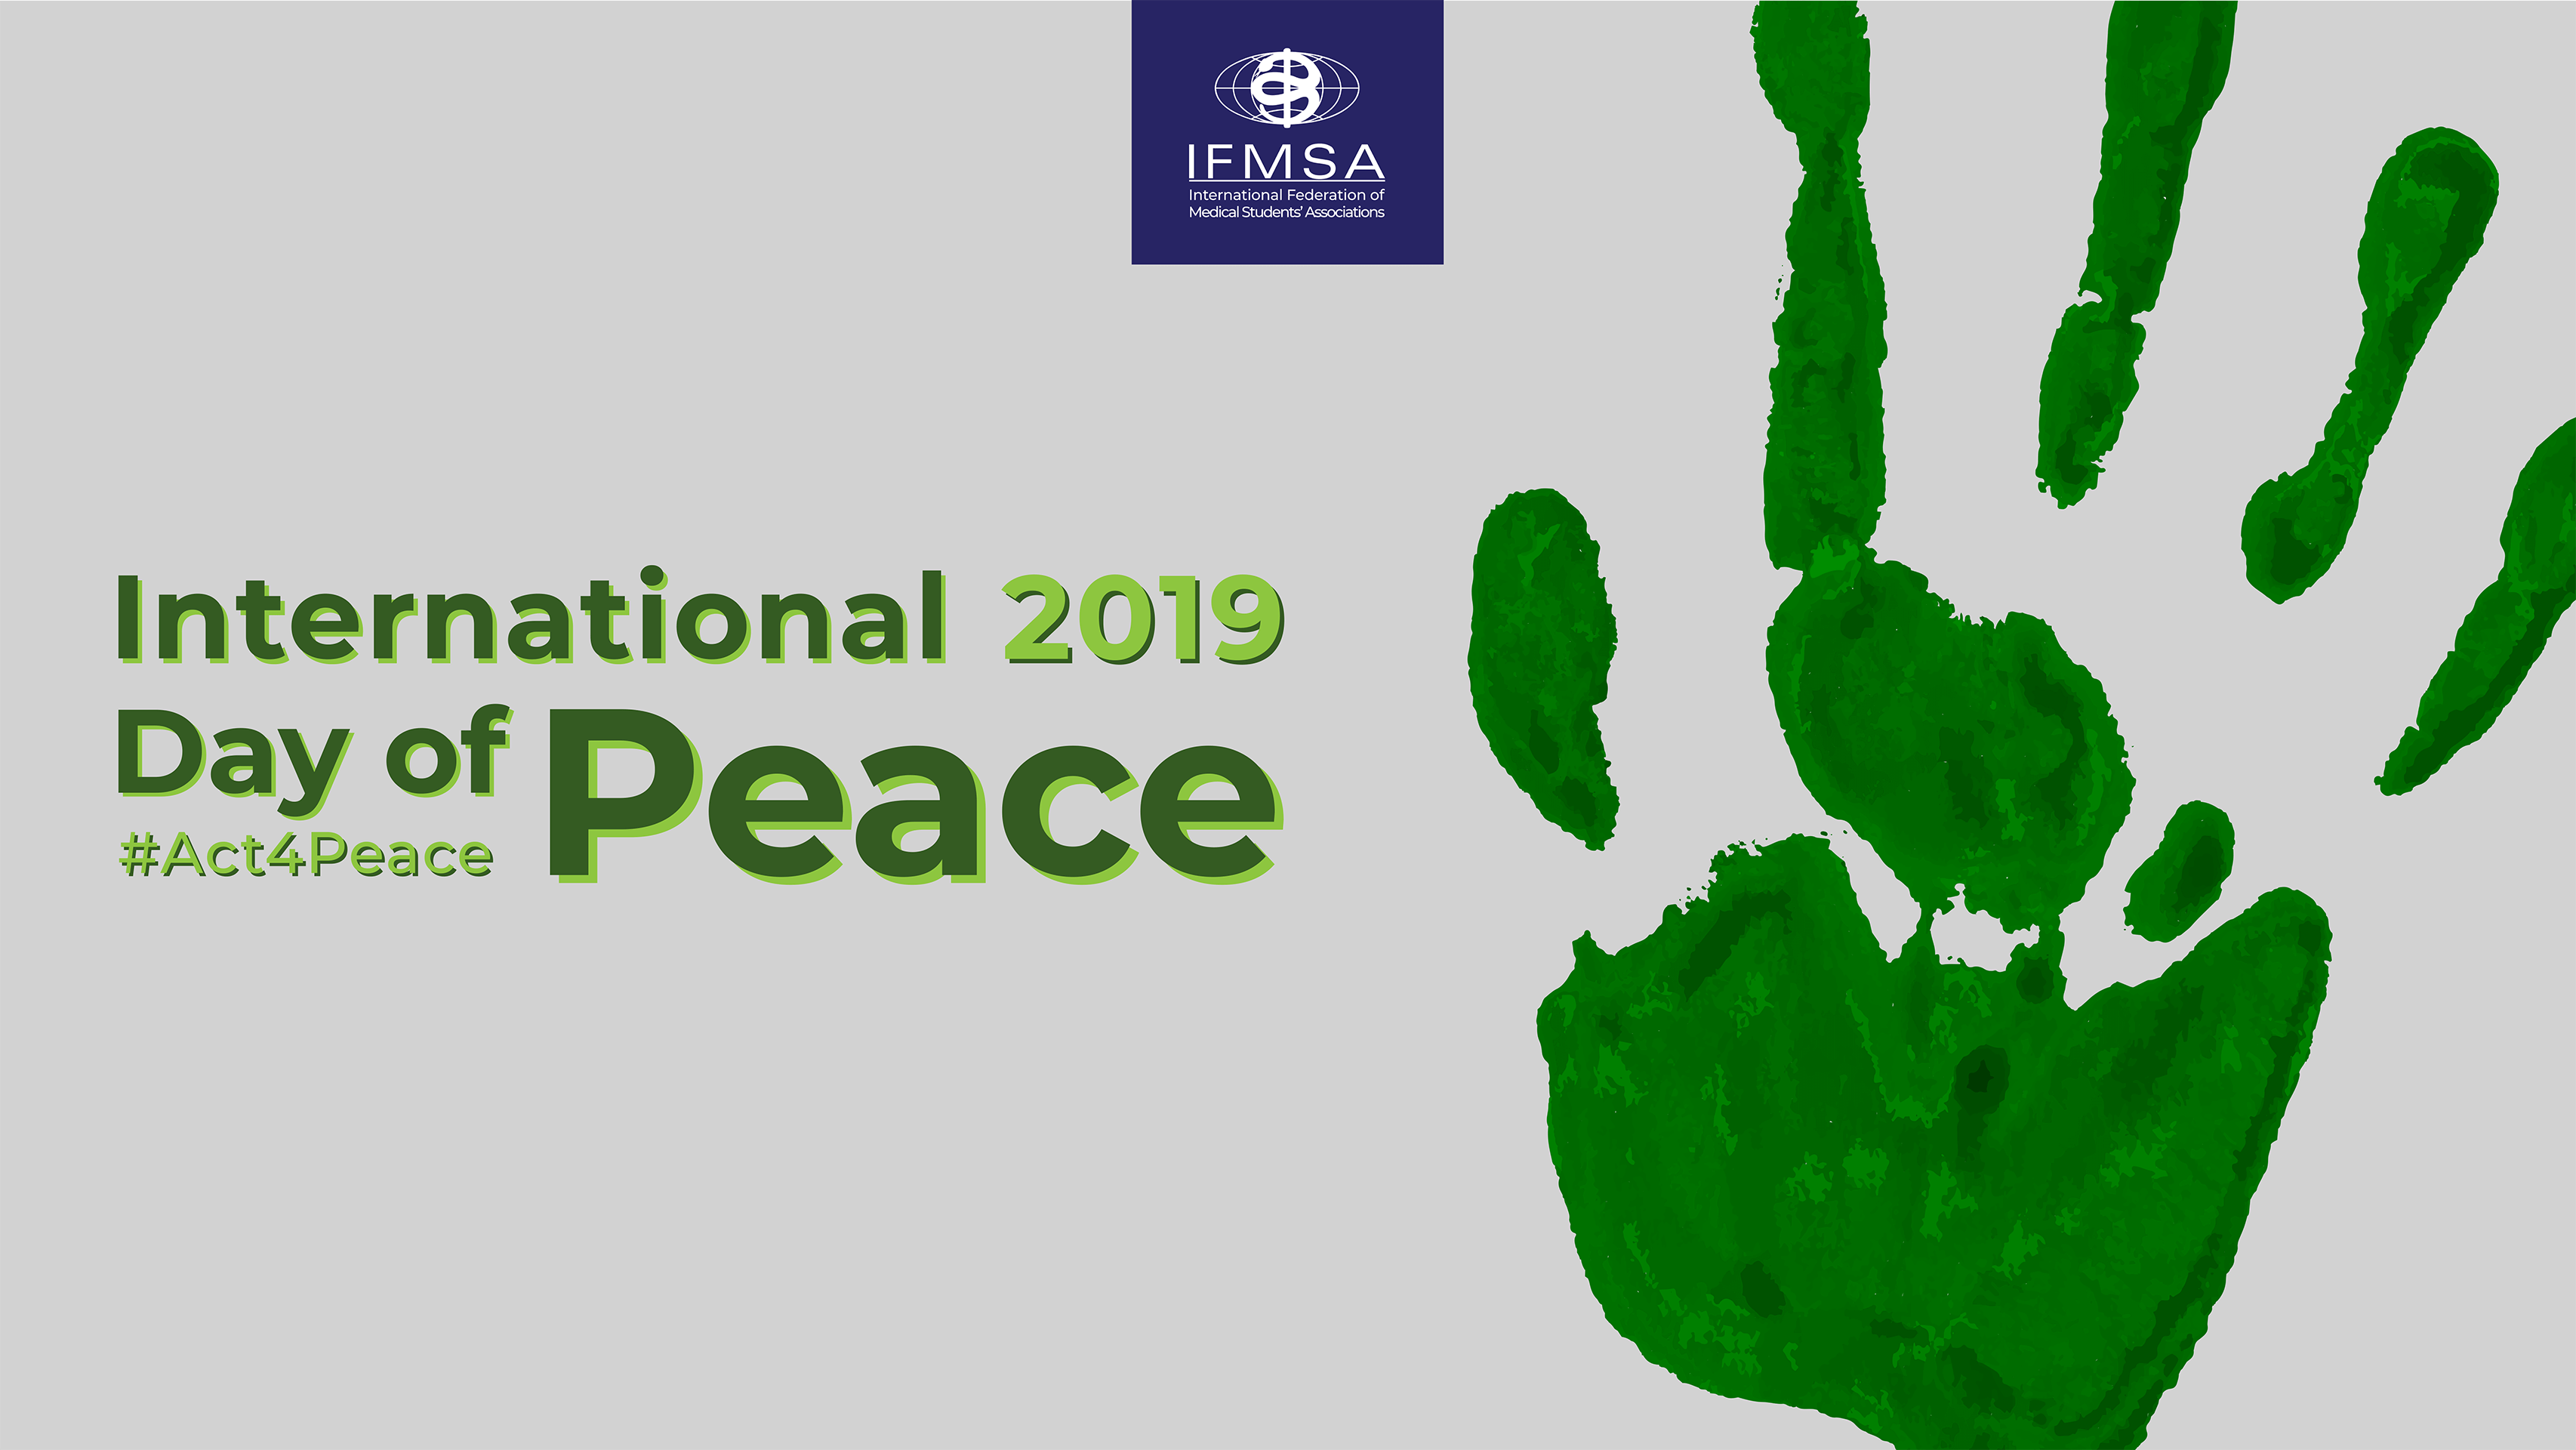 International Day of Peace 2019: Climate Action for Peace: It's now or NEVER!